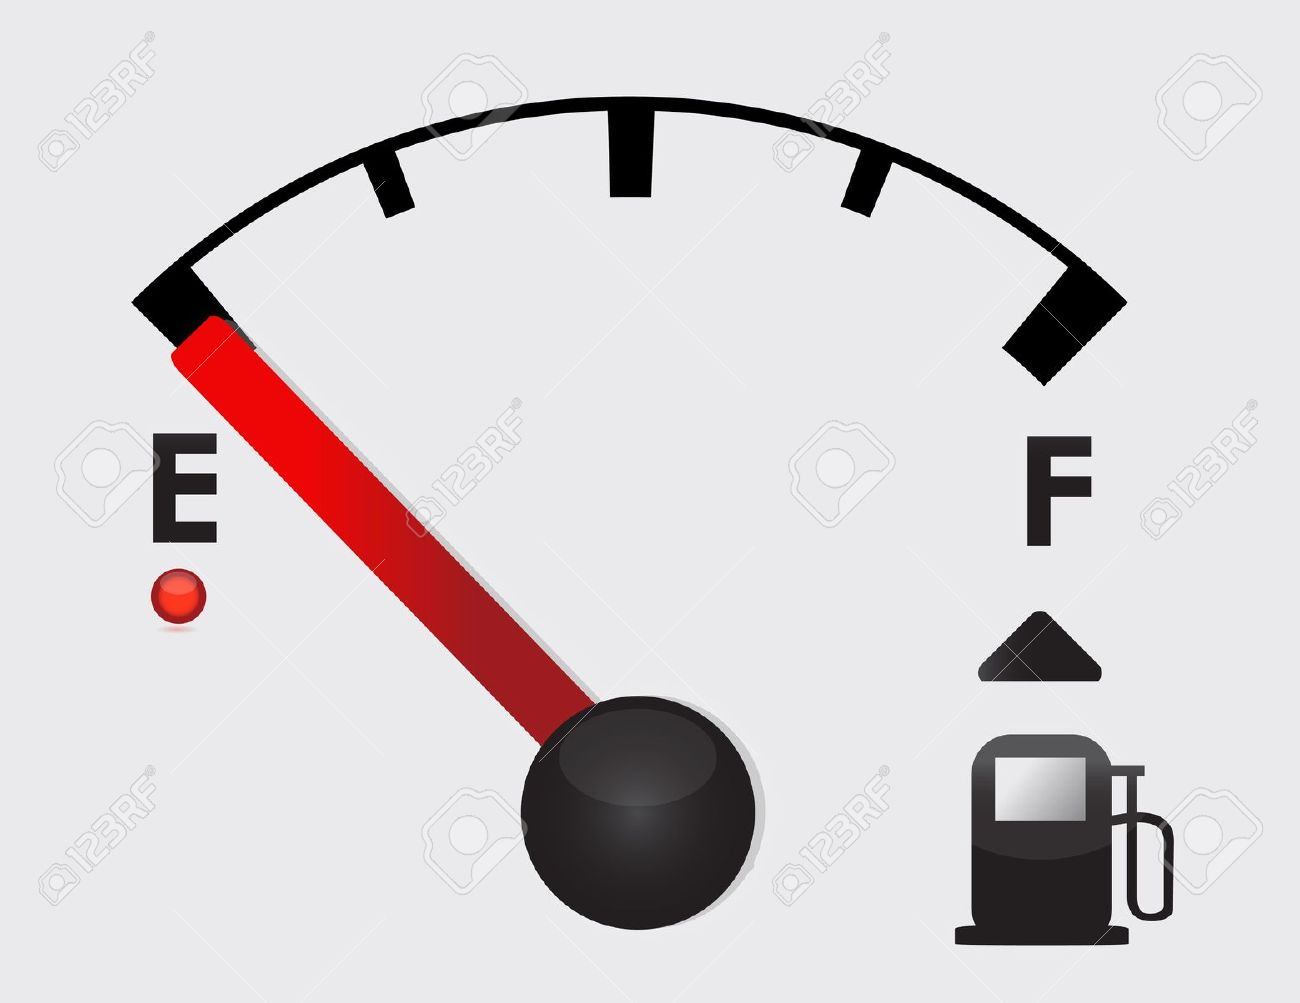 Empty Gas Tank Illustration Royalty Free Cliparts, Vectors, And.